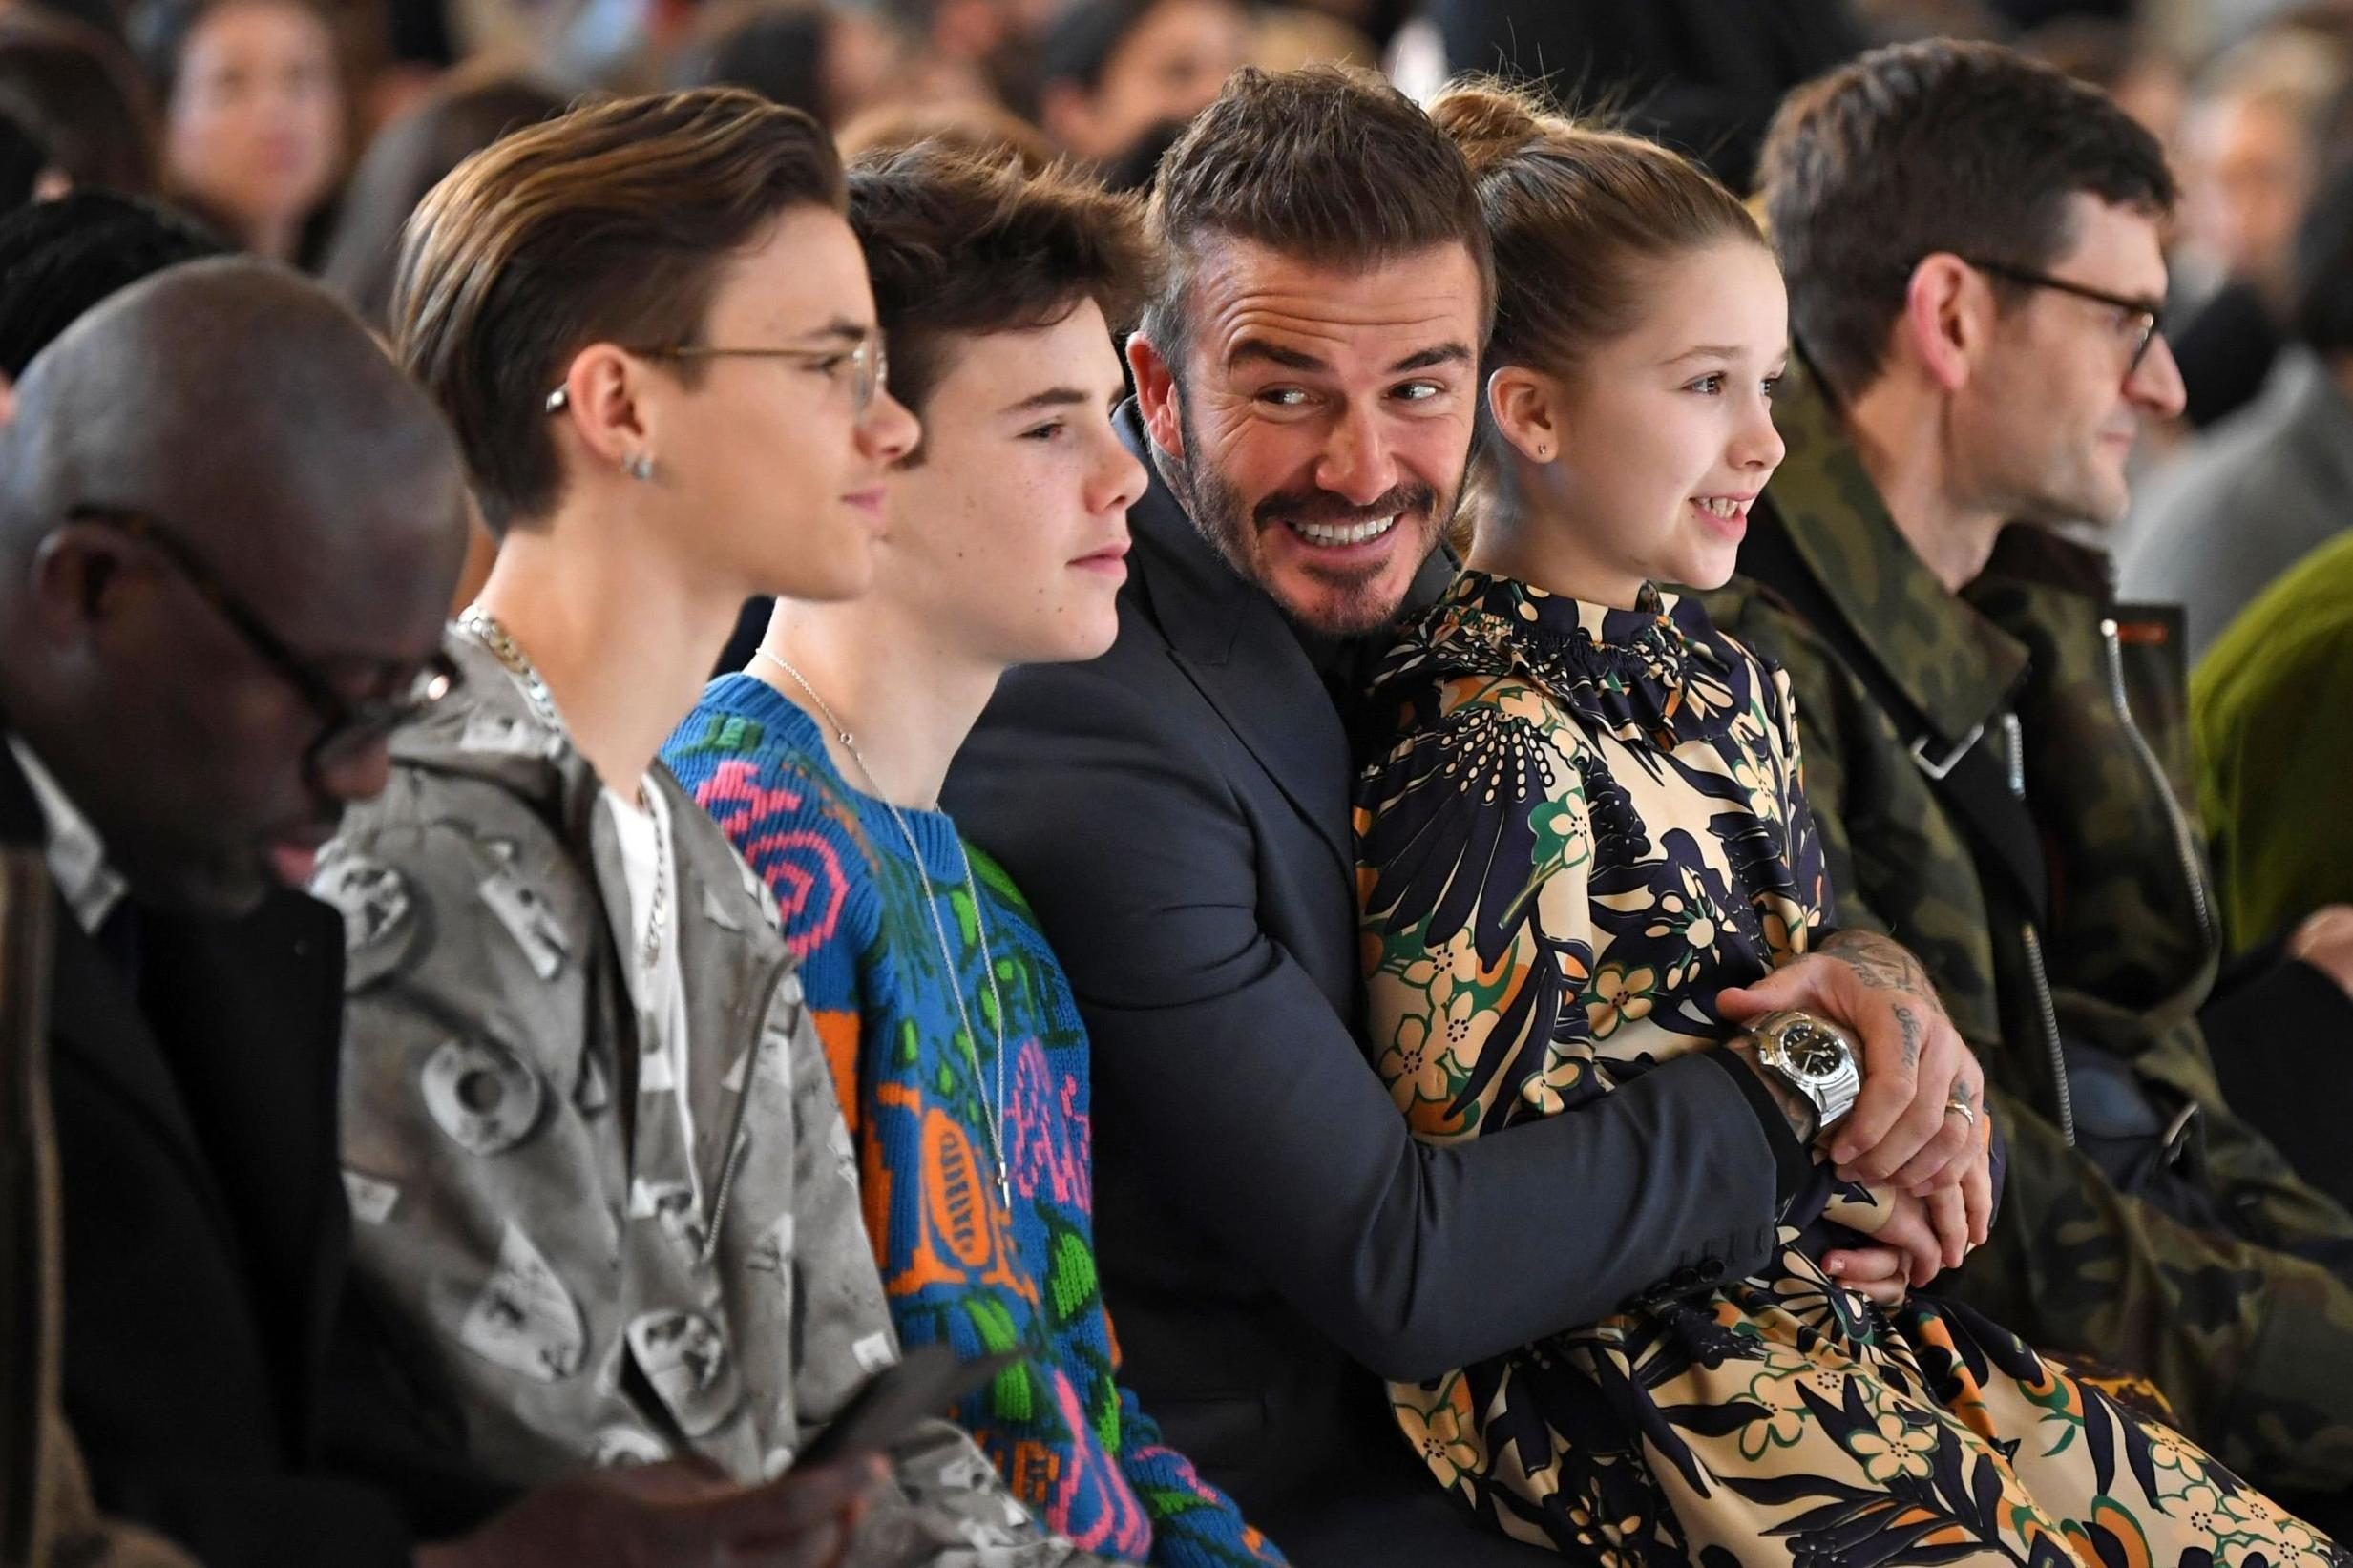 Victoria Beckham's family sit front row to watch London Fashion Week show